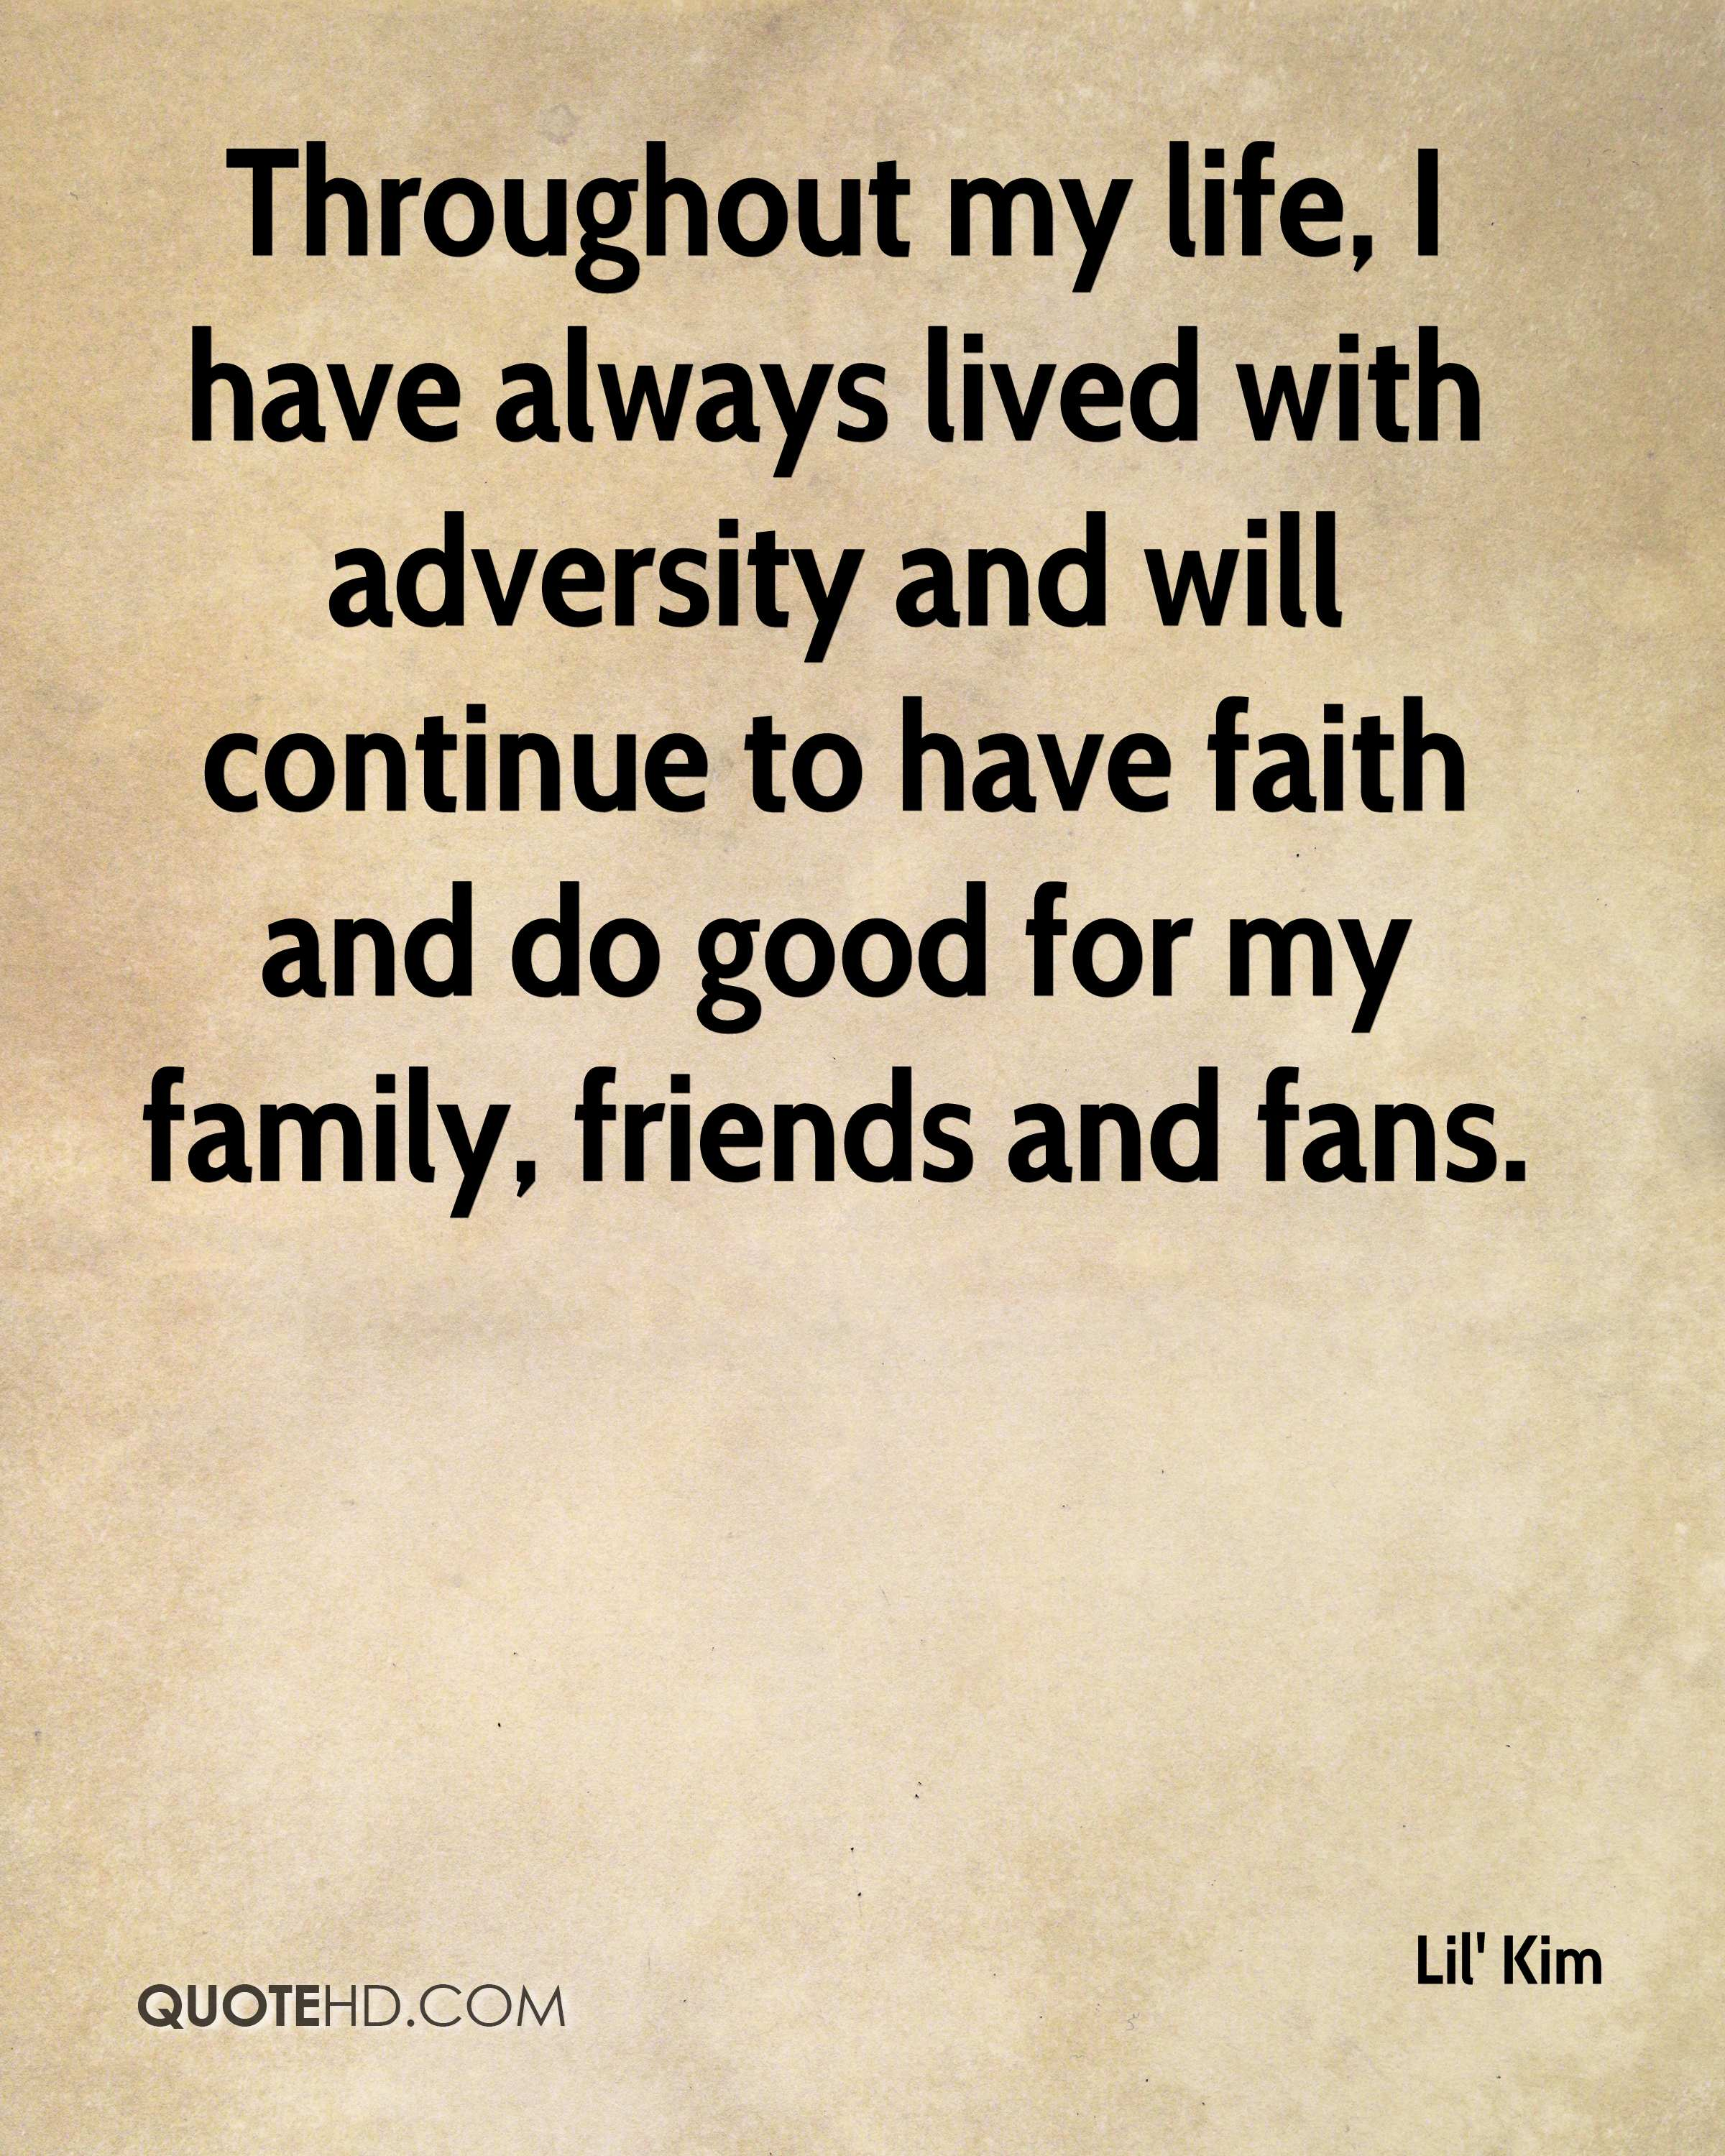 Throughout my life, I have always lived with adversity and will continue to have faith and do good for my family, friends and fans.